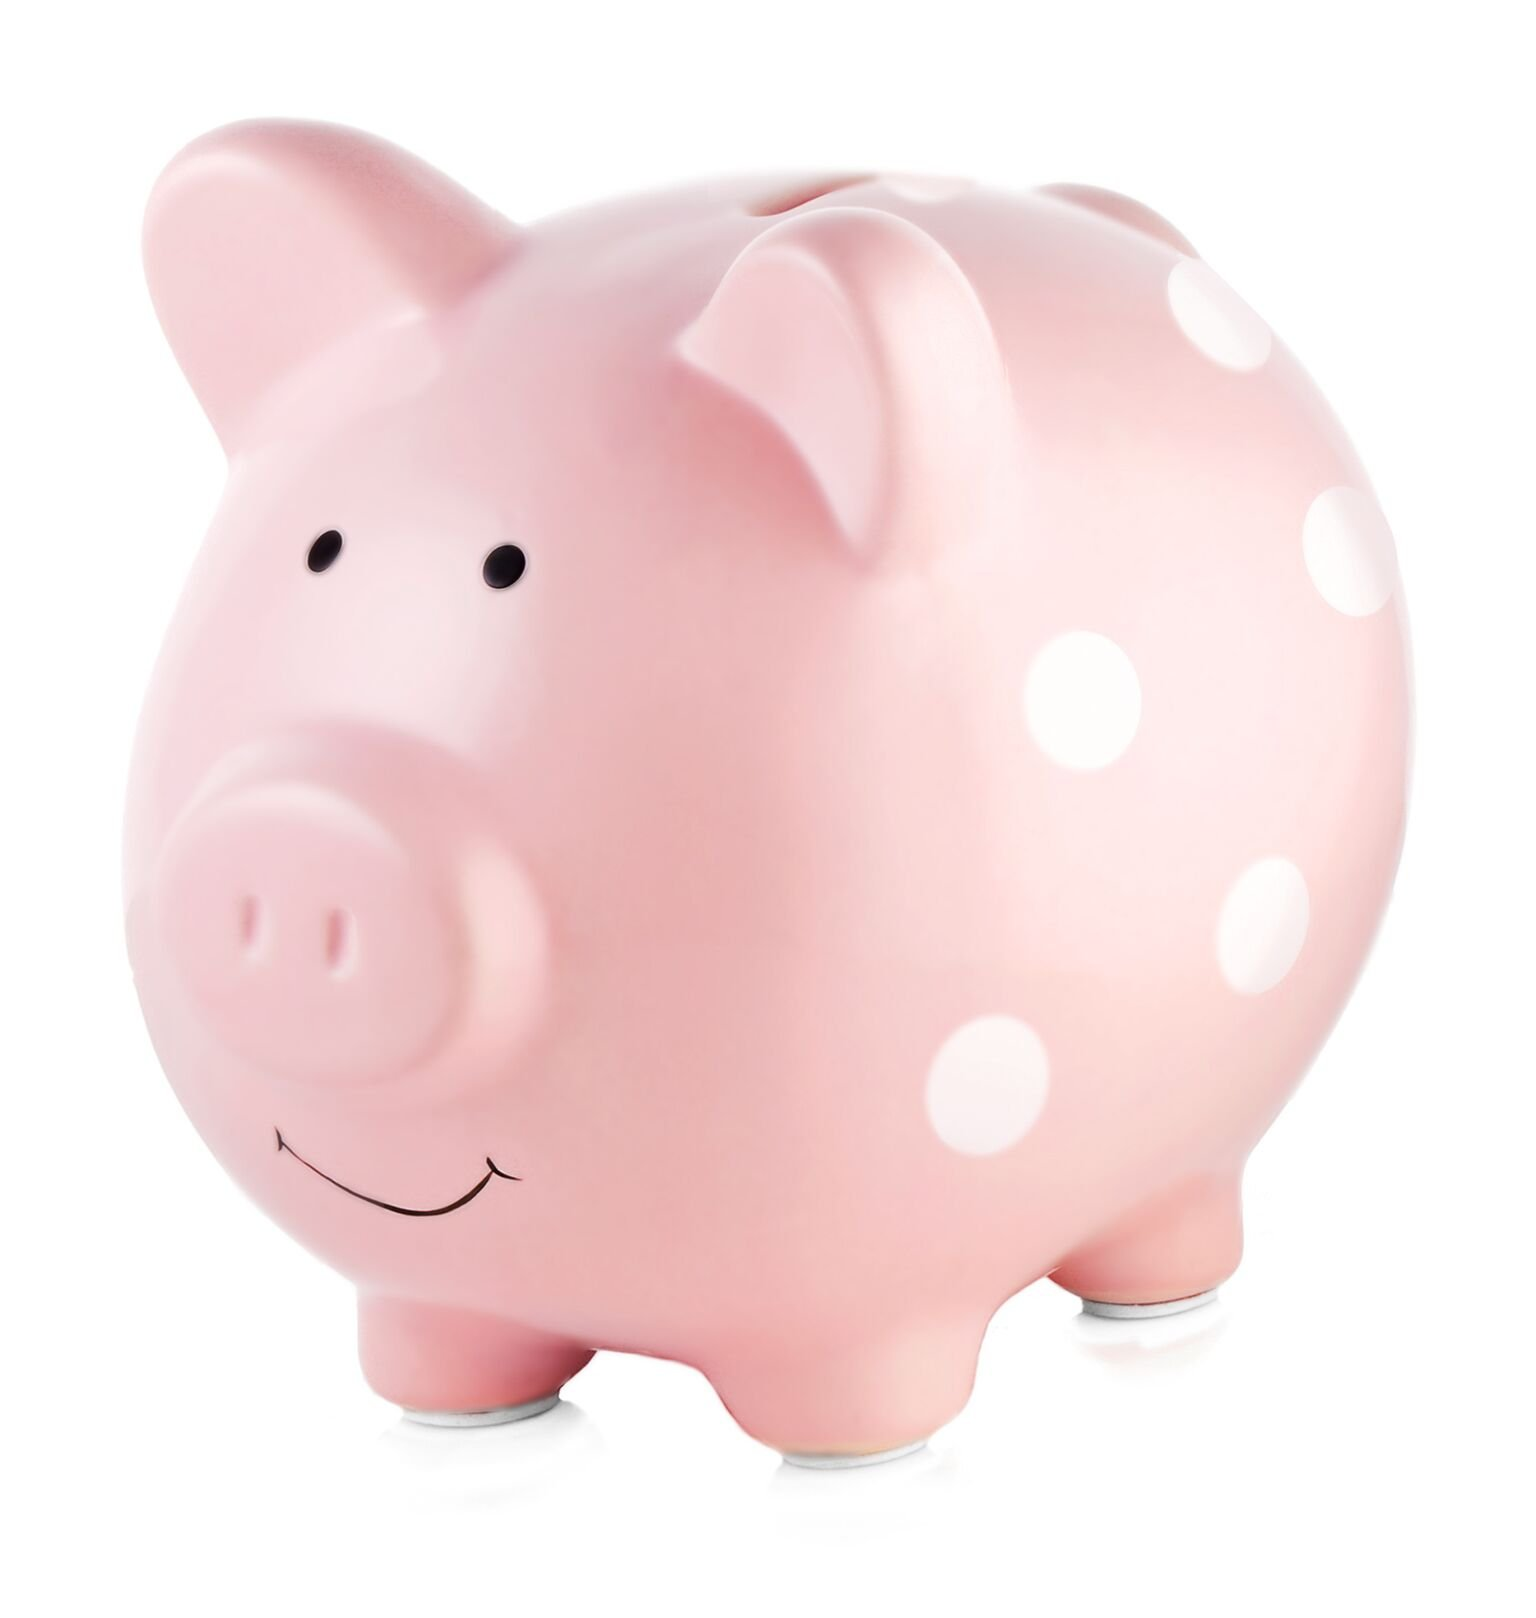 Pearhead Ceramic Pink Piggy Bank, Makes a Perfect Unique Gift, Nursery Décor, Keepsake, or Savings Piggy Bank for Kids, Pink